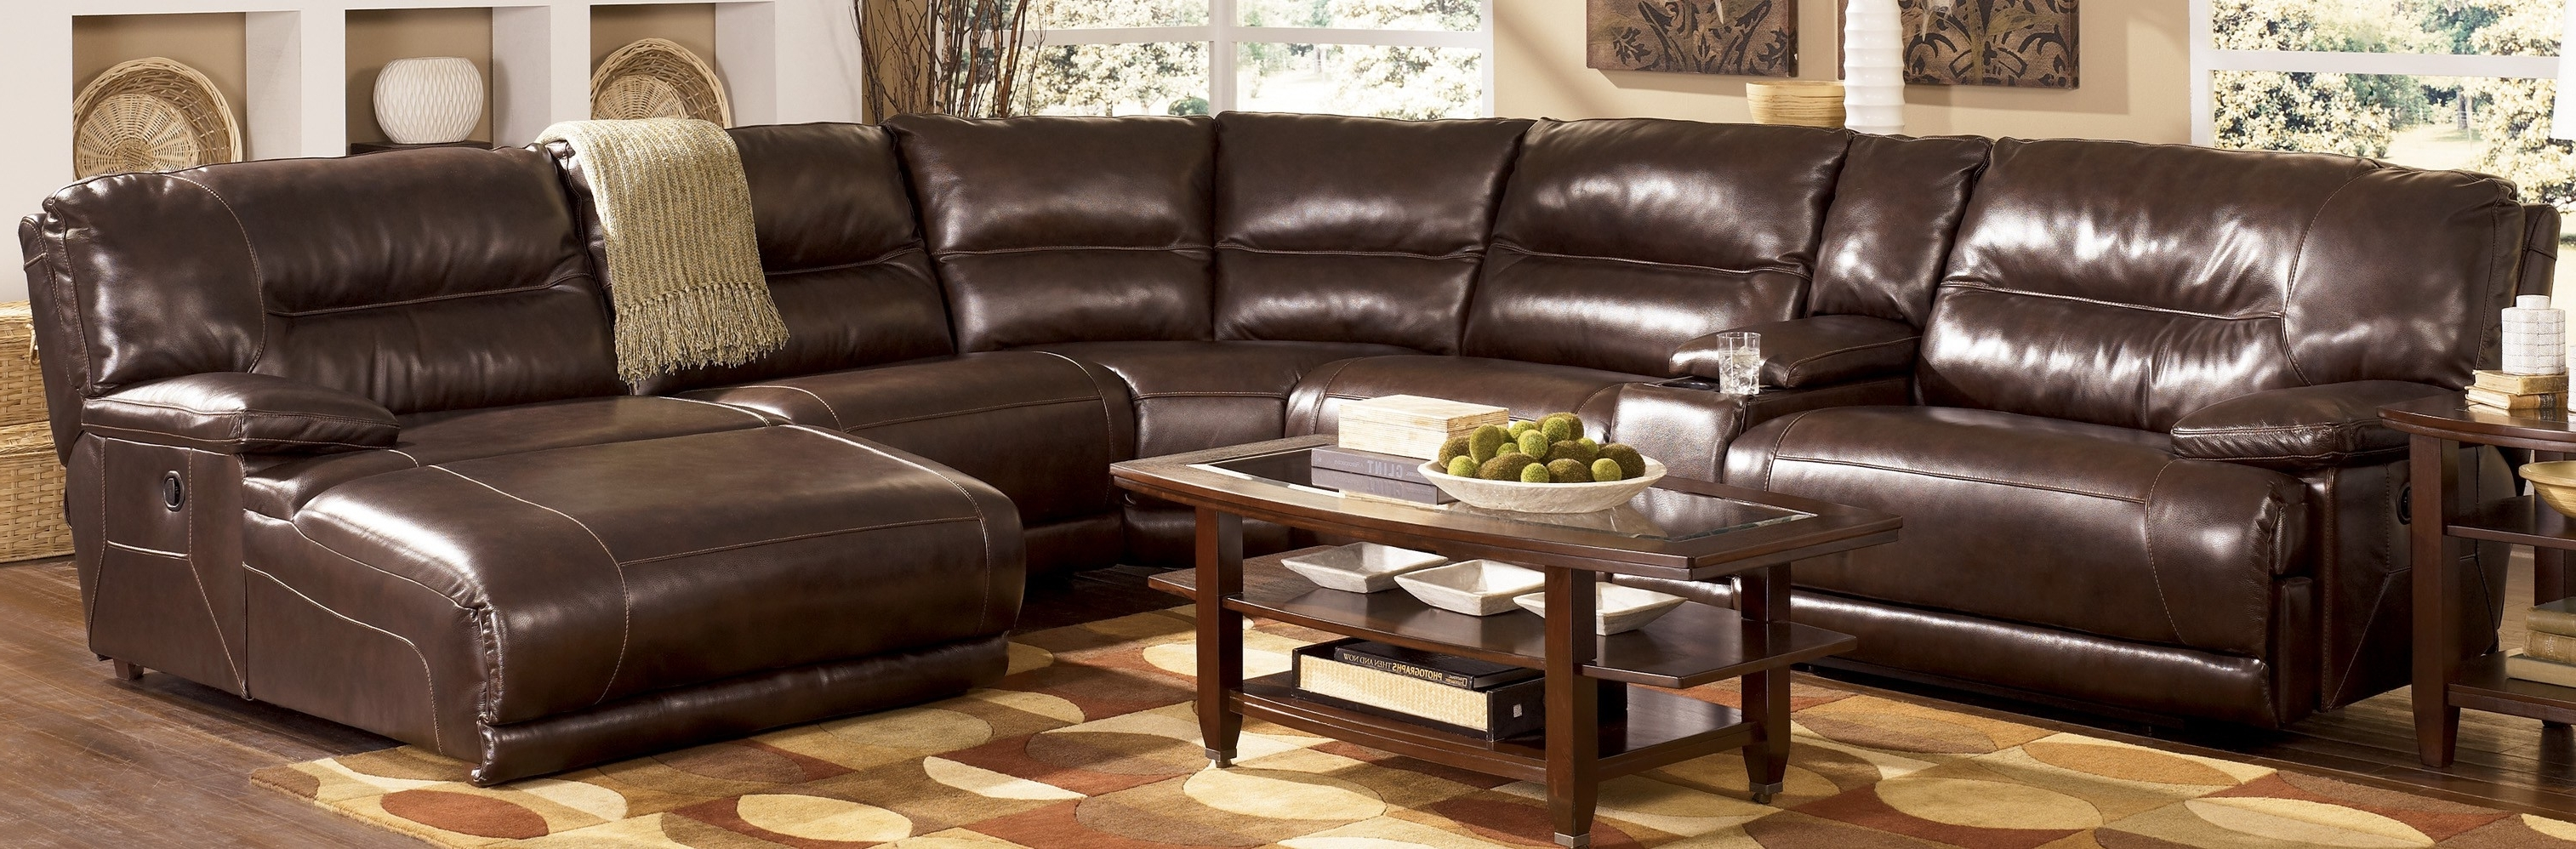 Simmons Chaise Sofas Within Well Known Sofa : Sectional With Recliner And Chaise Lounge Couch Covers For (View 18 of 20)